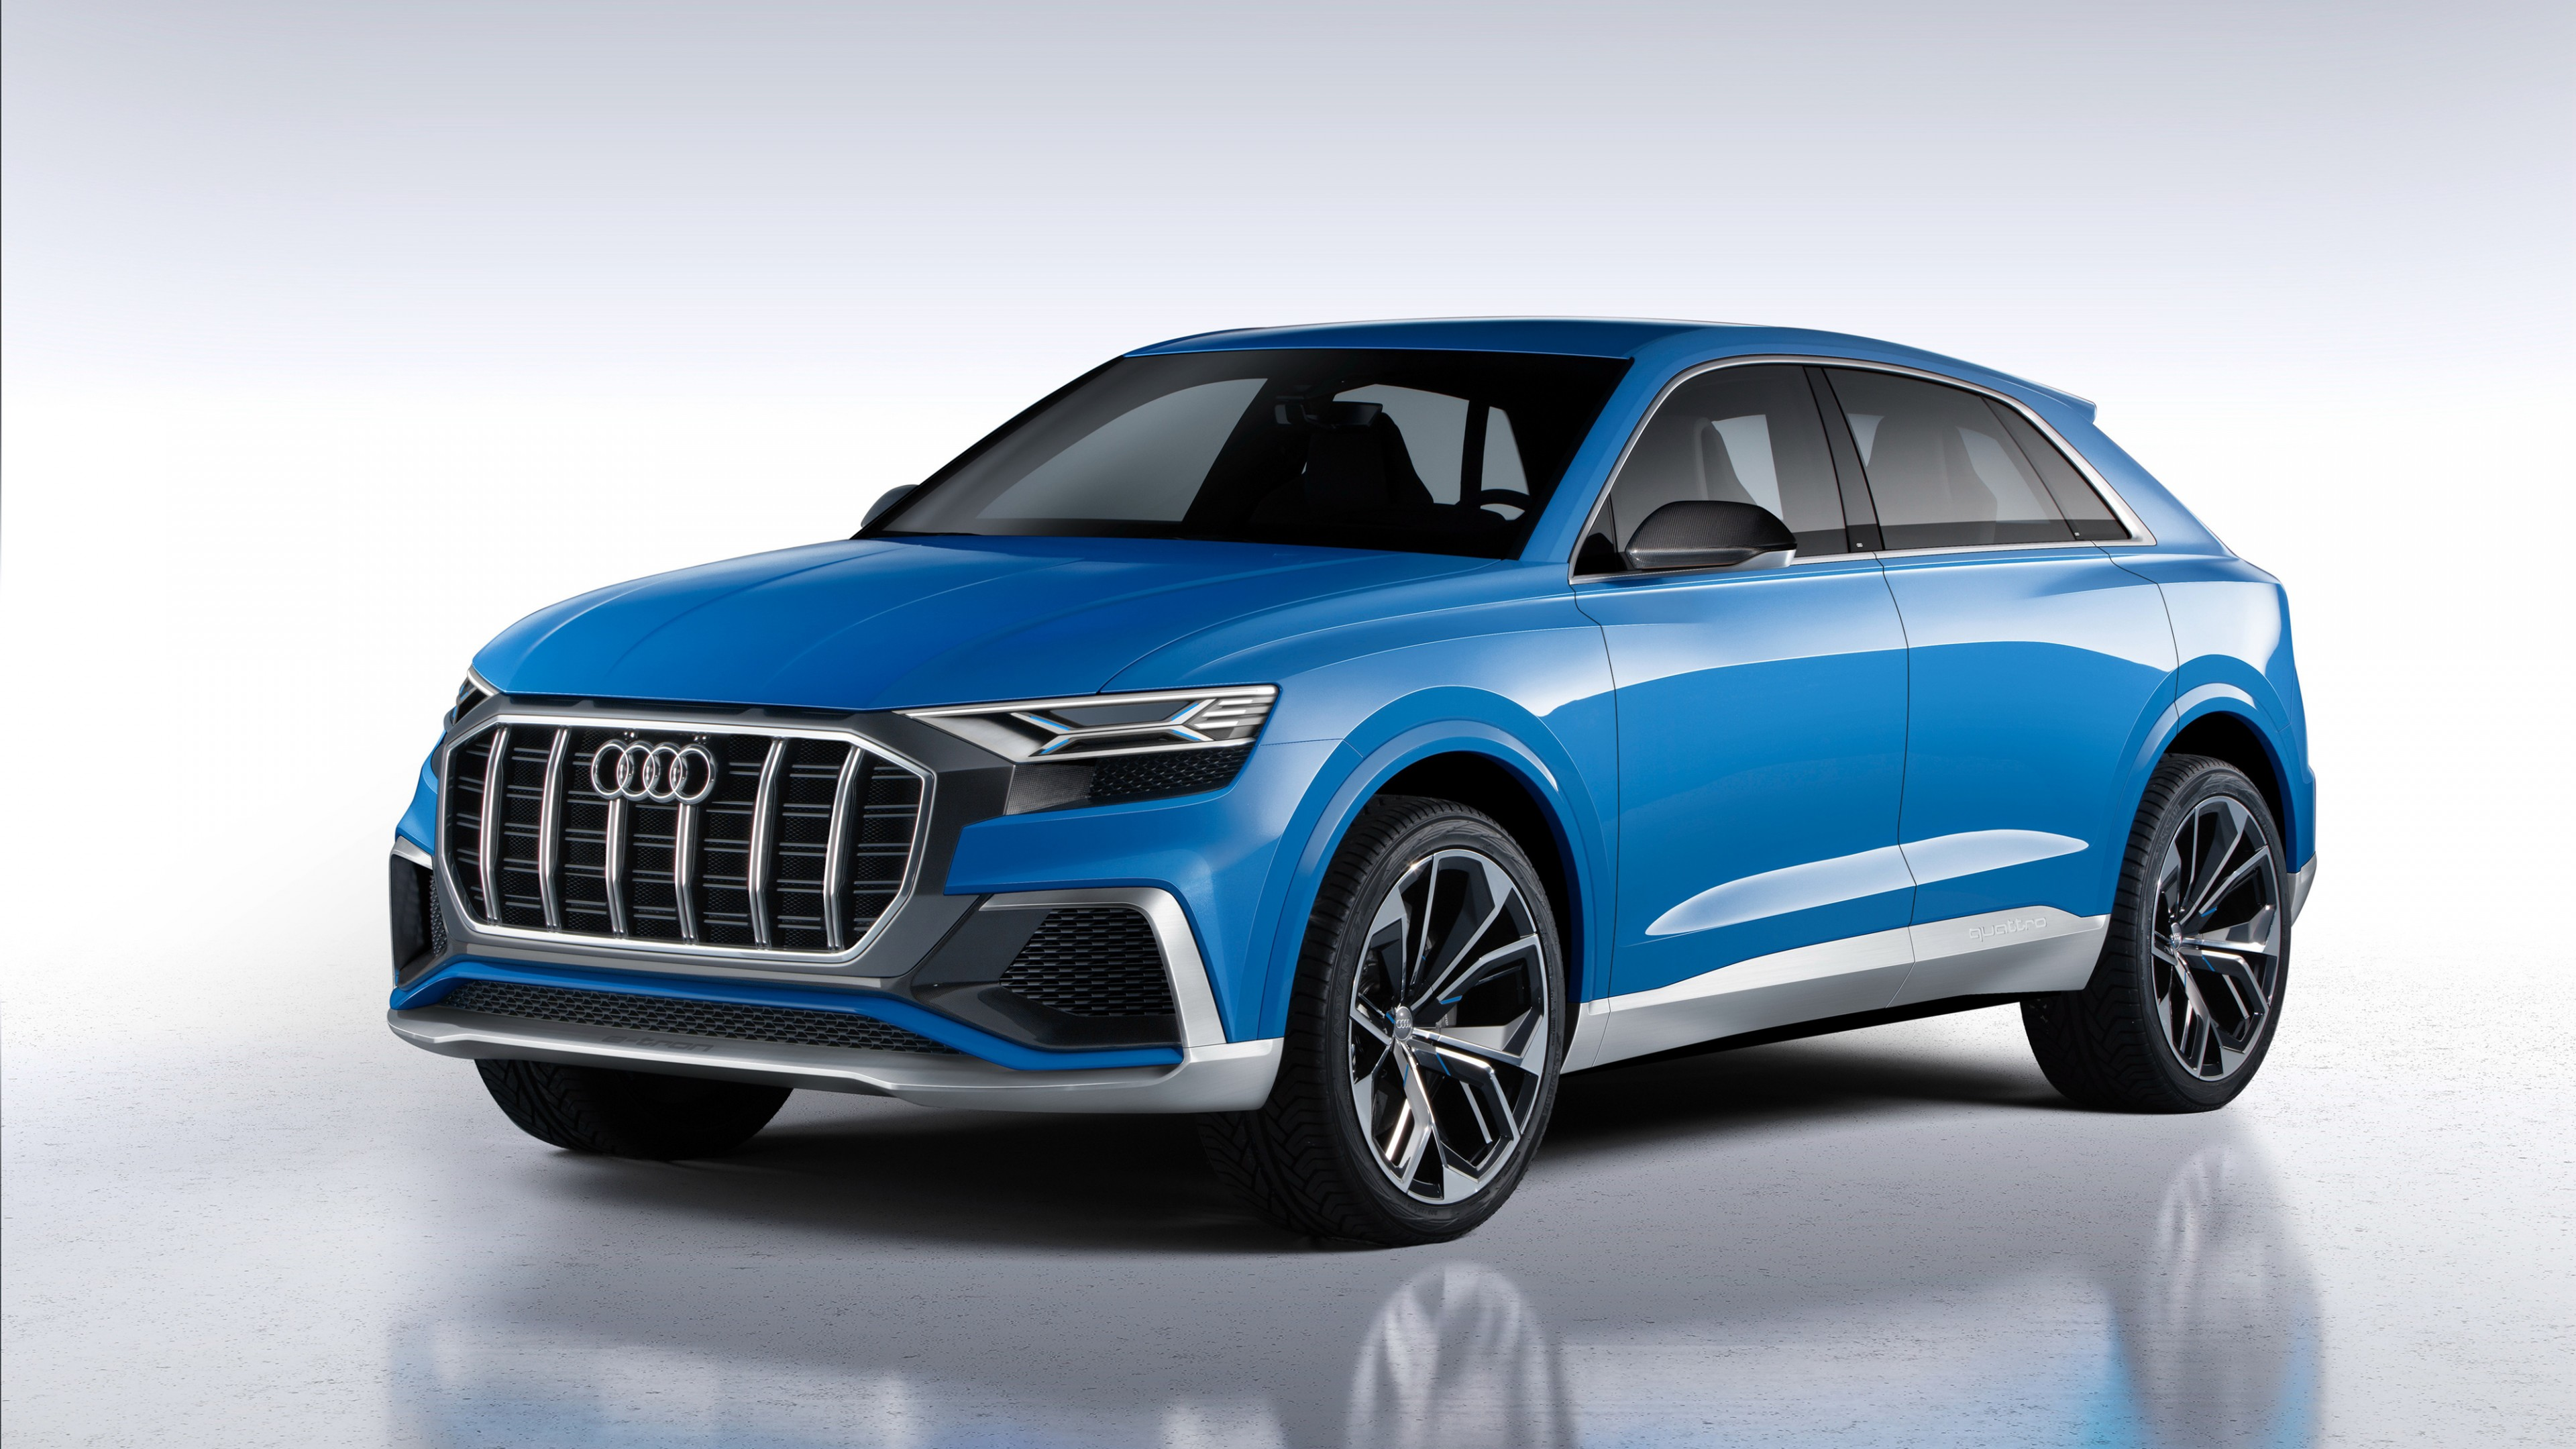 2018 audi q8 concept 3 wallpaper hd car wallpapers id. Black Bedroom Furniture Sets. Home Design Ideas